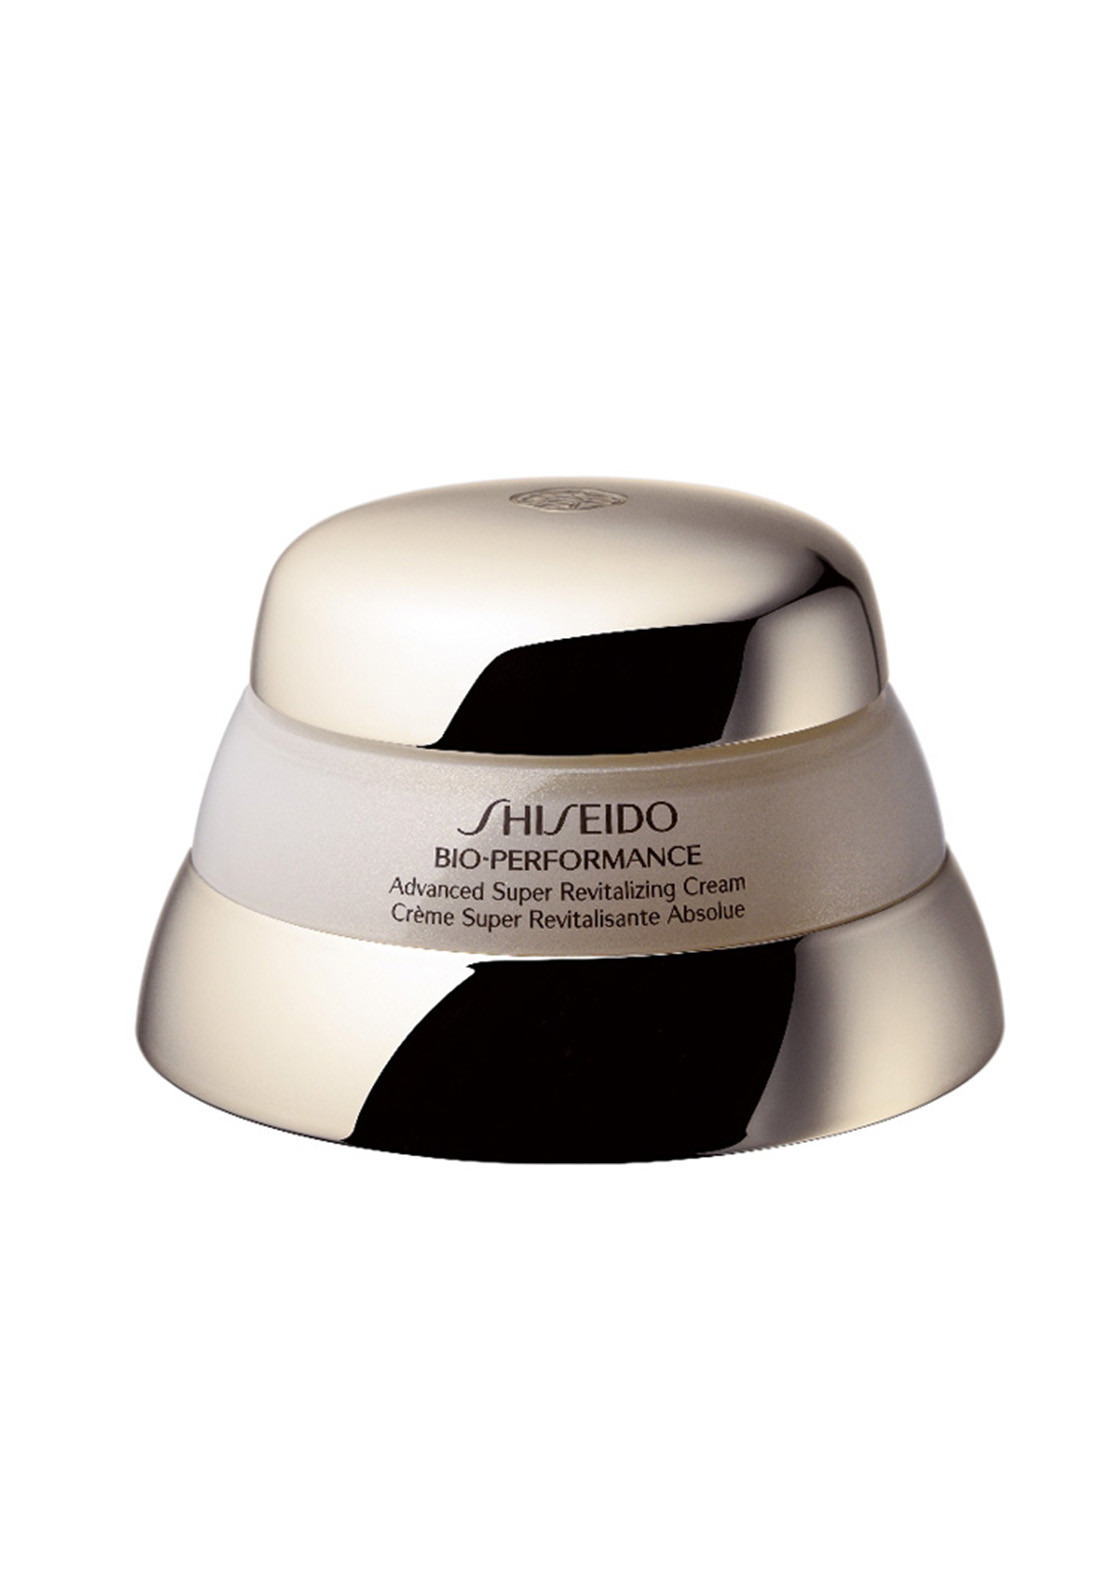 Shiseido Bio-Performance Advanced Super Revitalizing Cream (50ml)